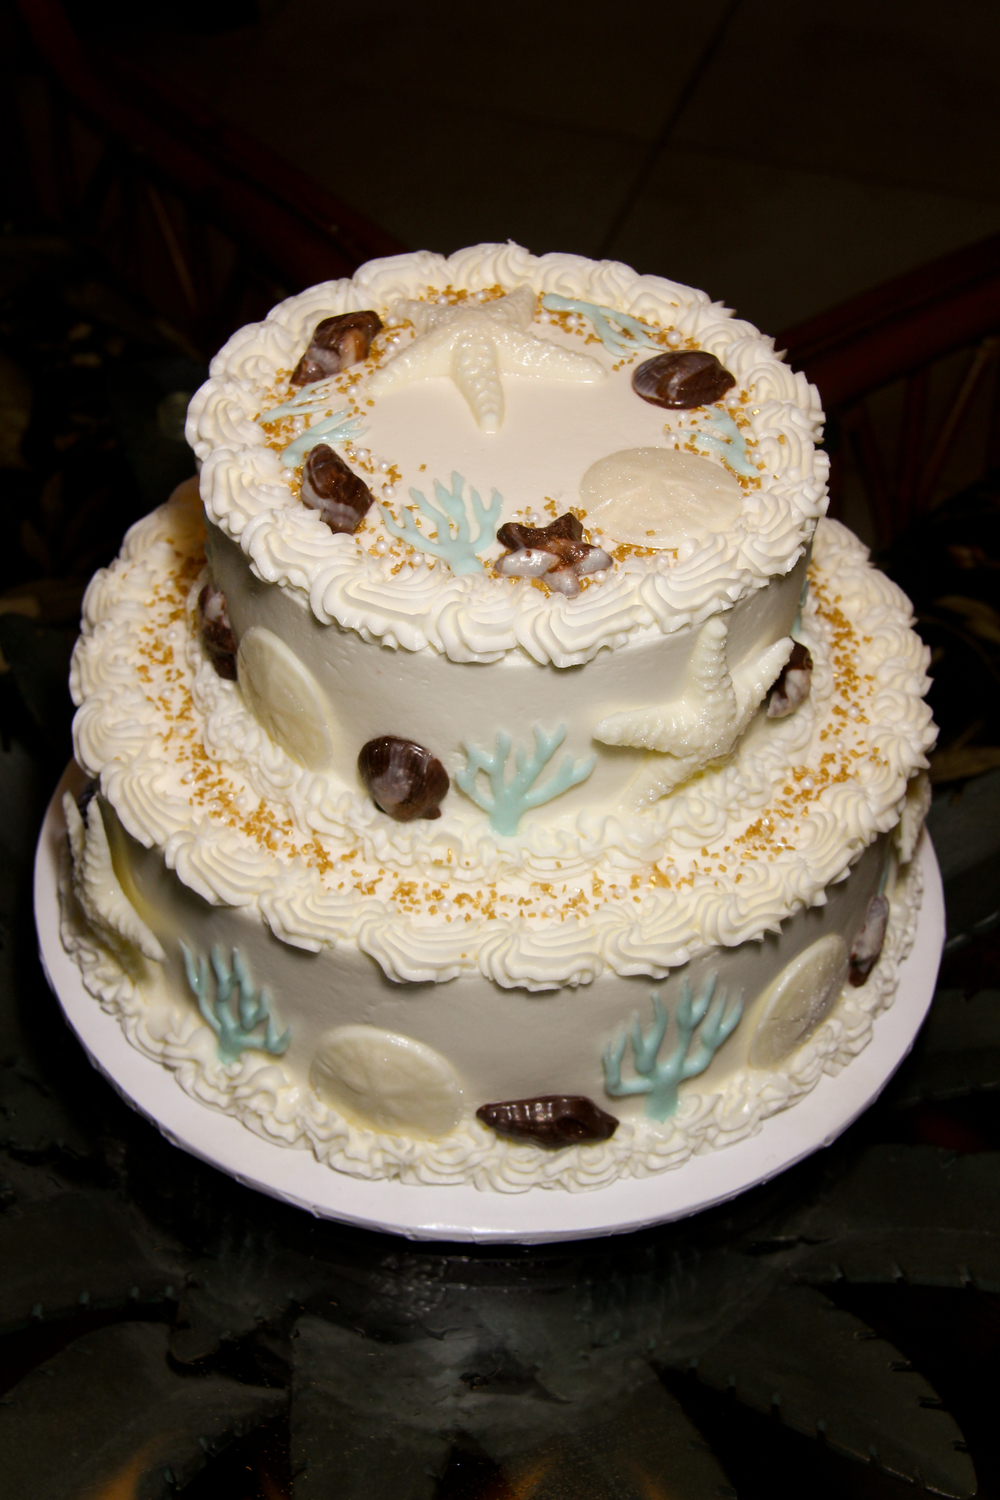 Best Beach Wedding Cake Tybee Island, Hilton Head, Folly beach affordable wedding packages